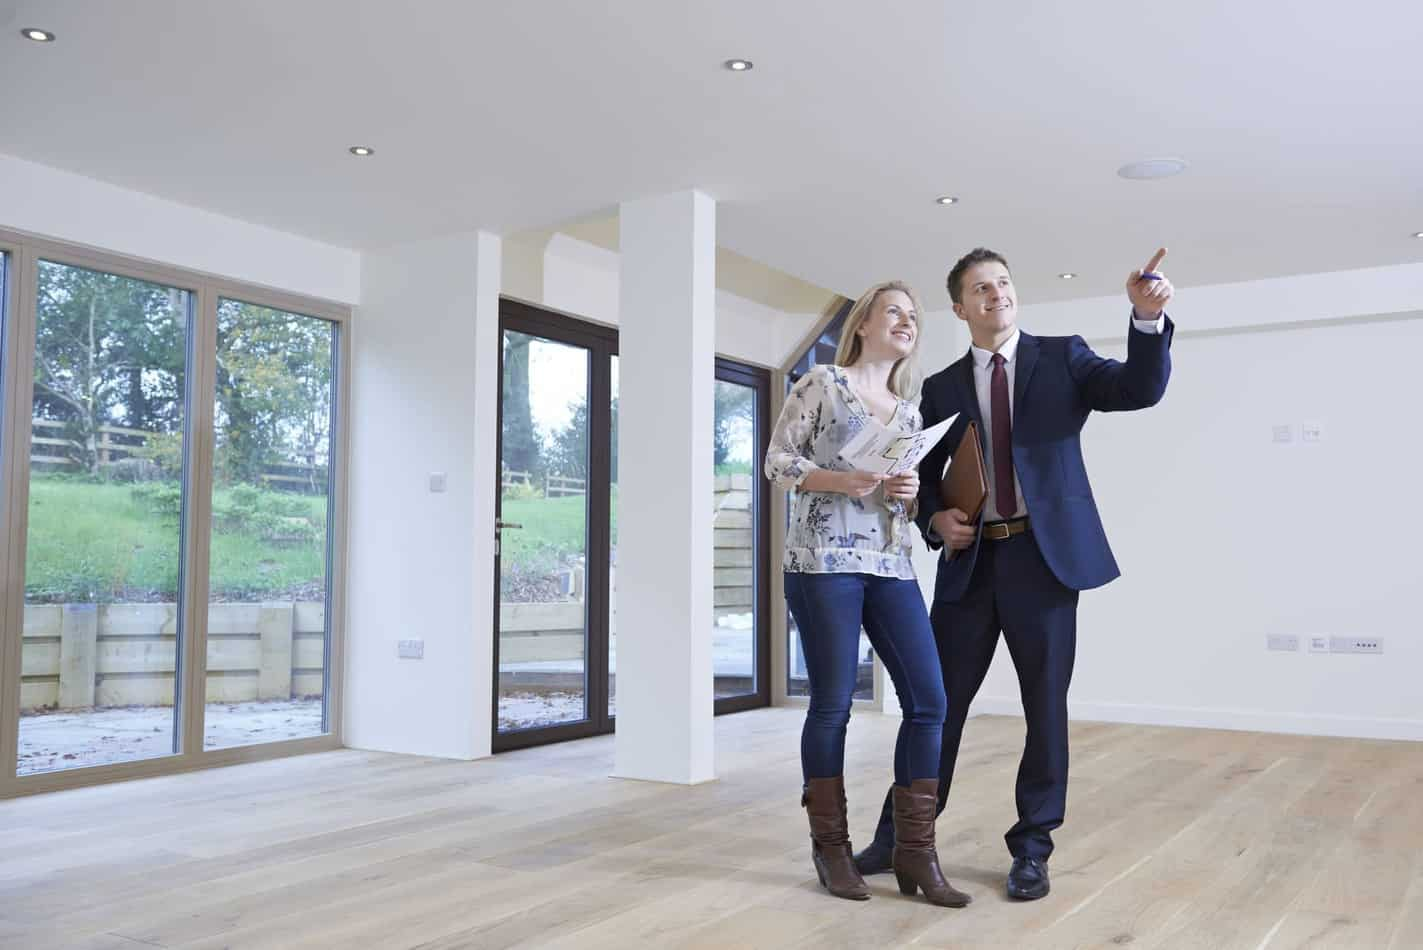 Real Estate Agent Showing Prospective Female Buyer Around Property